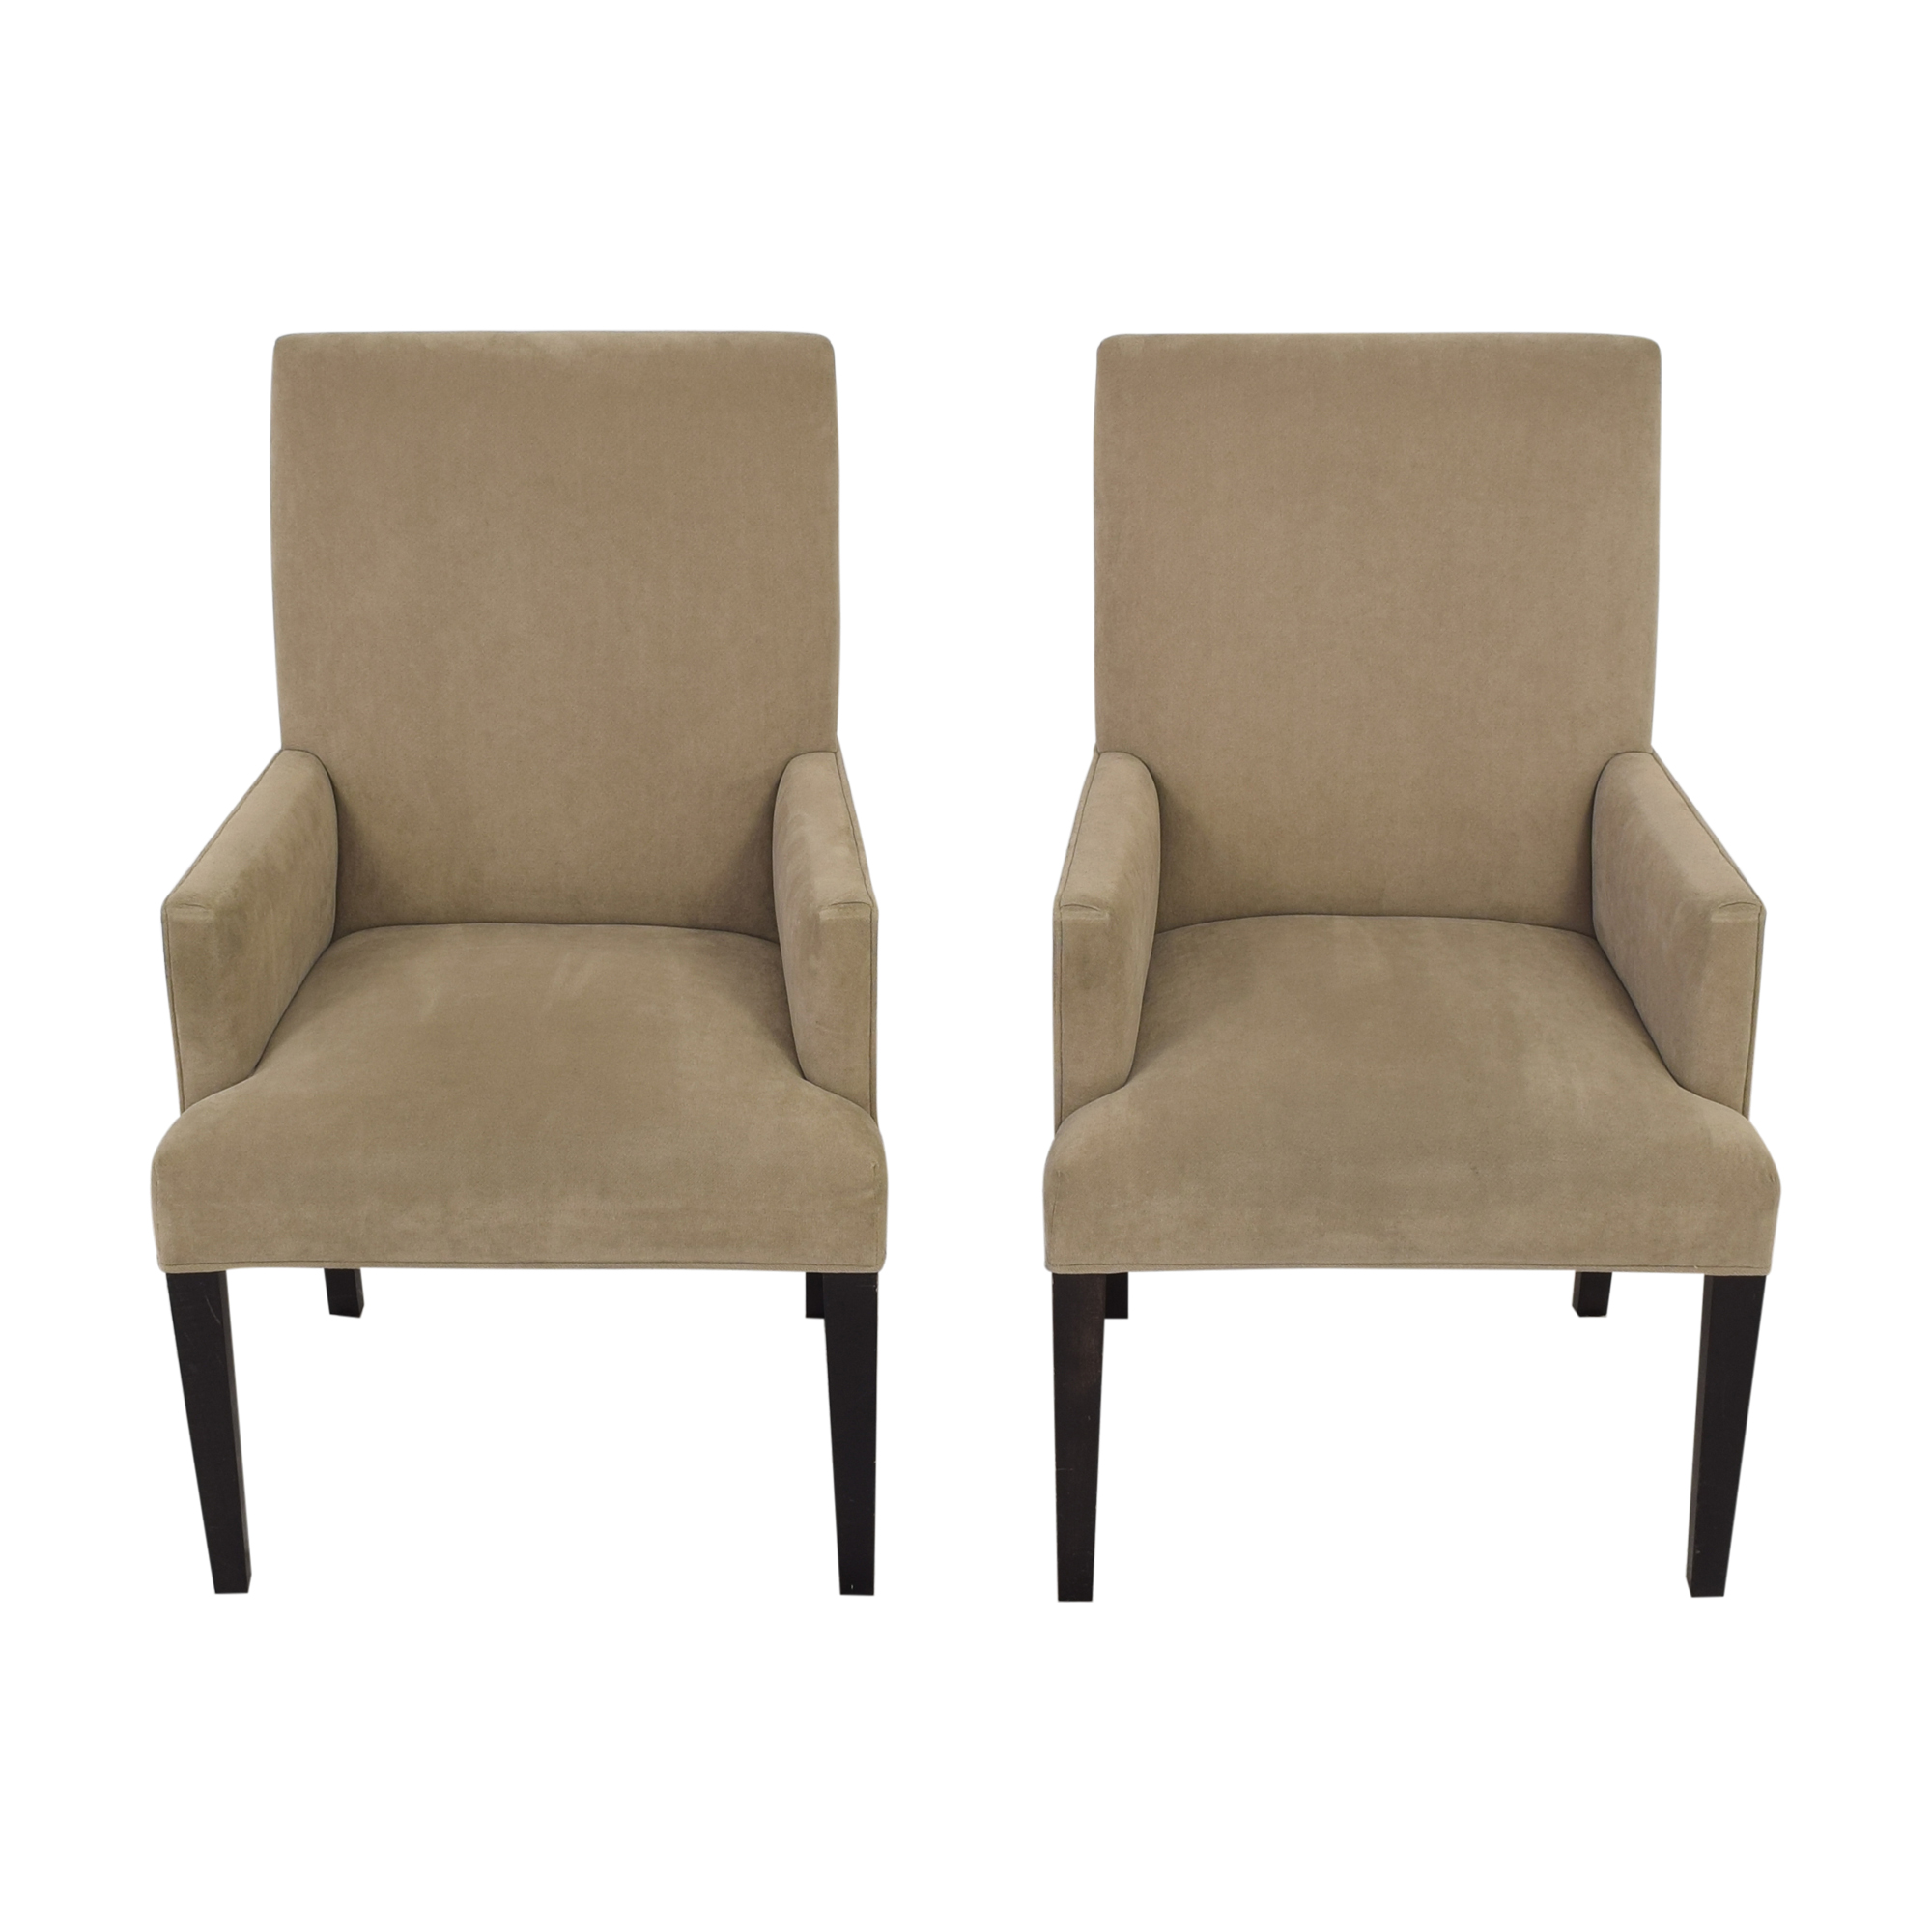 shop Crate & Barrel Upholstered Dining Chairs Crate & Barrel Dining Chairs